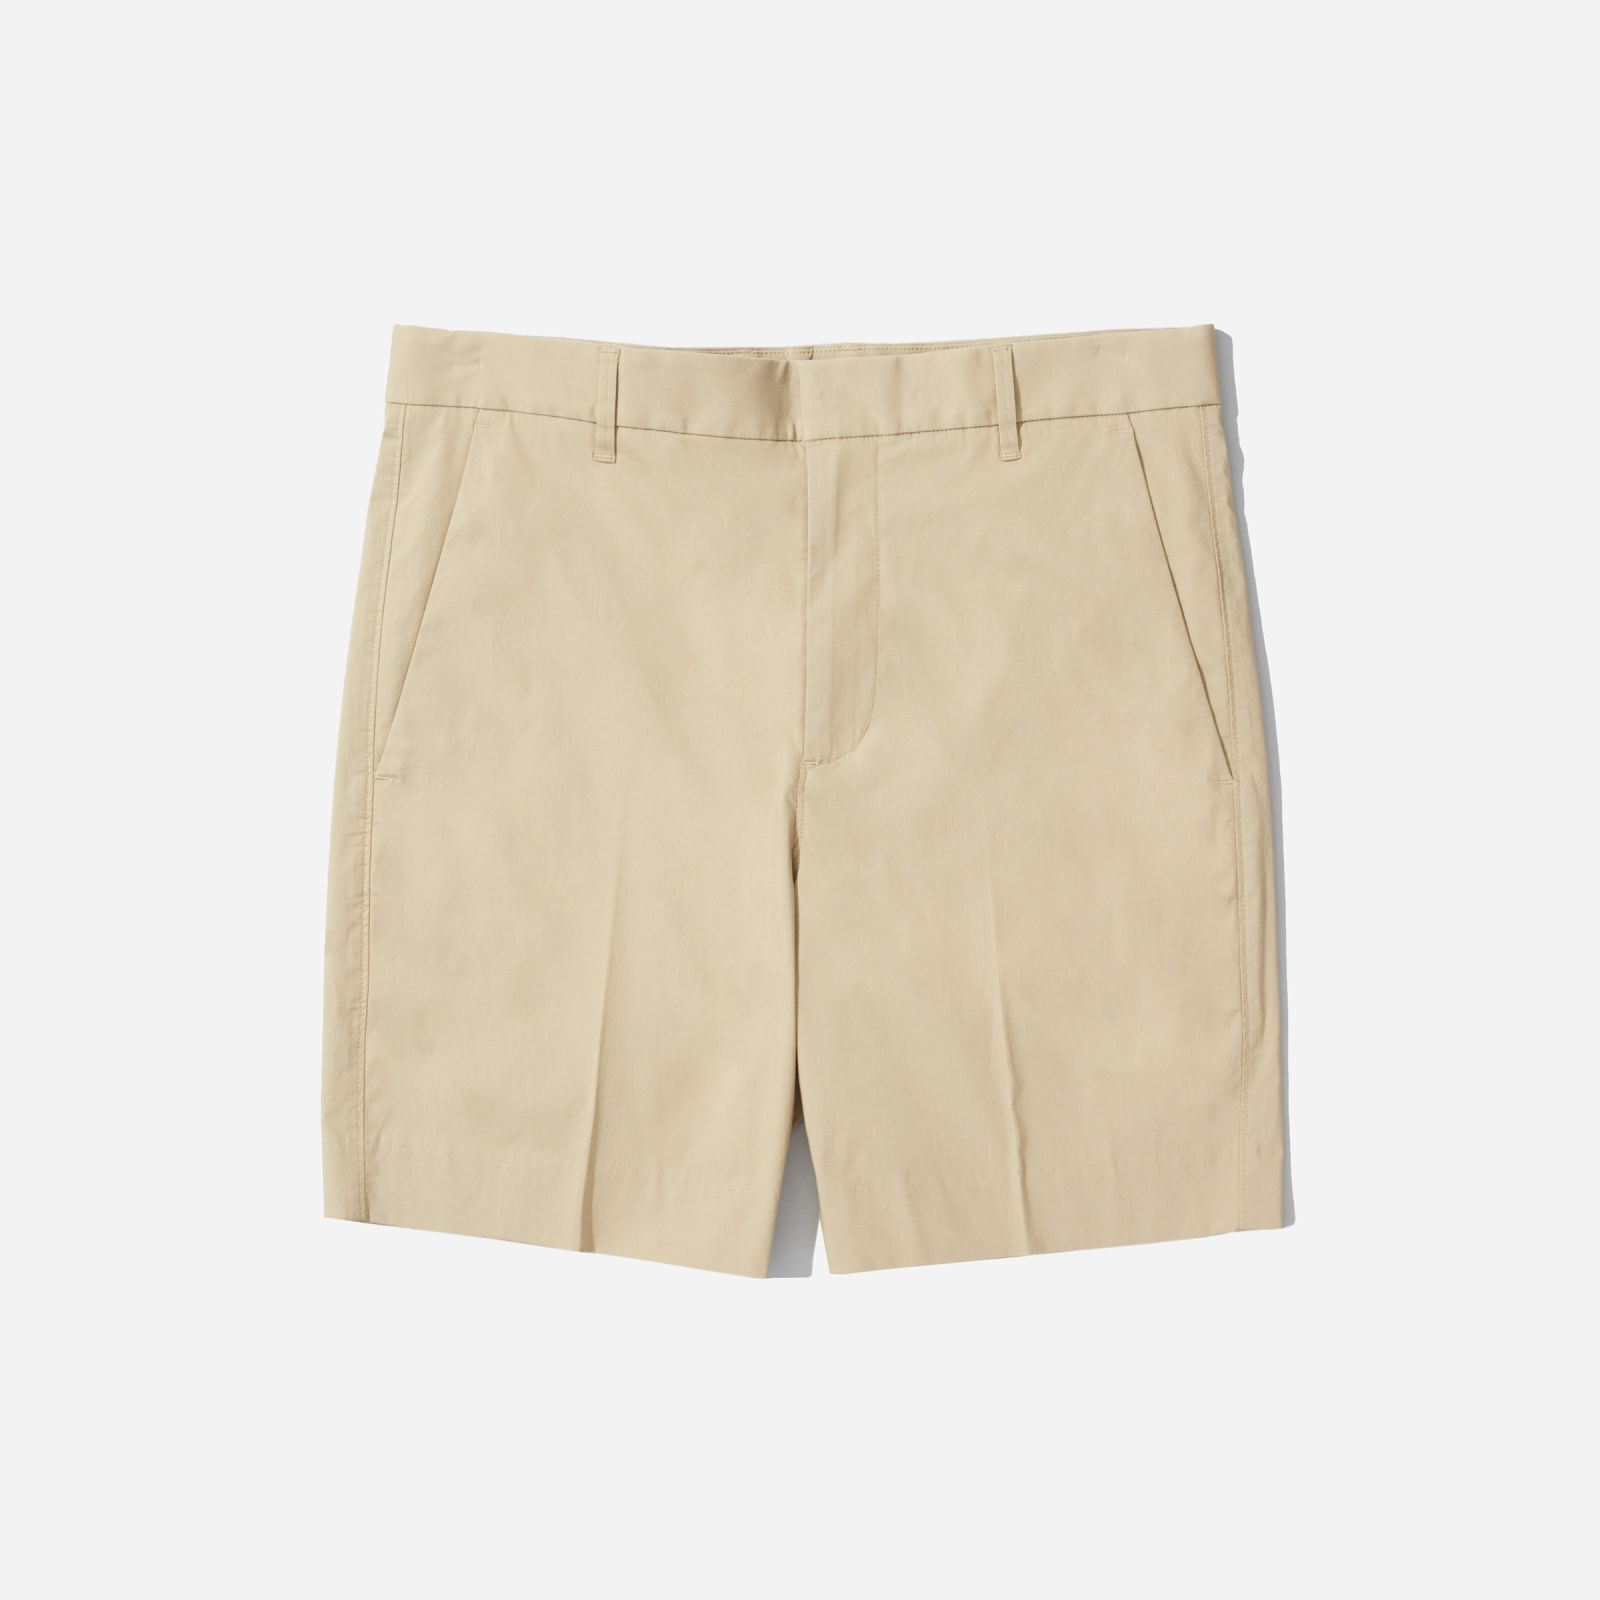 """men's air chino 7"""" short by everlane in khaki, size 36"""